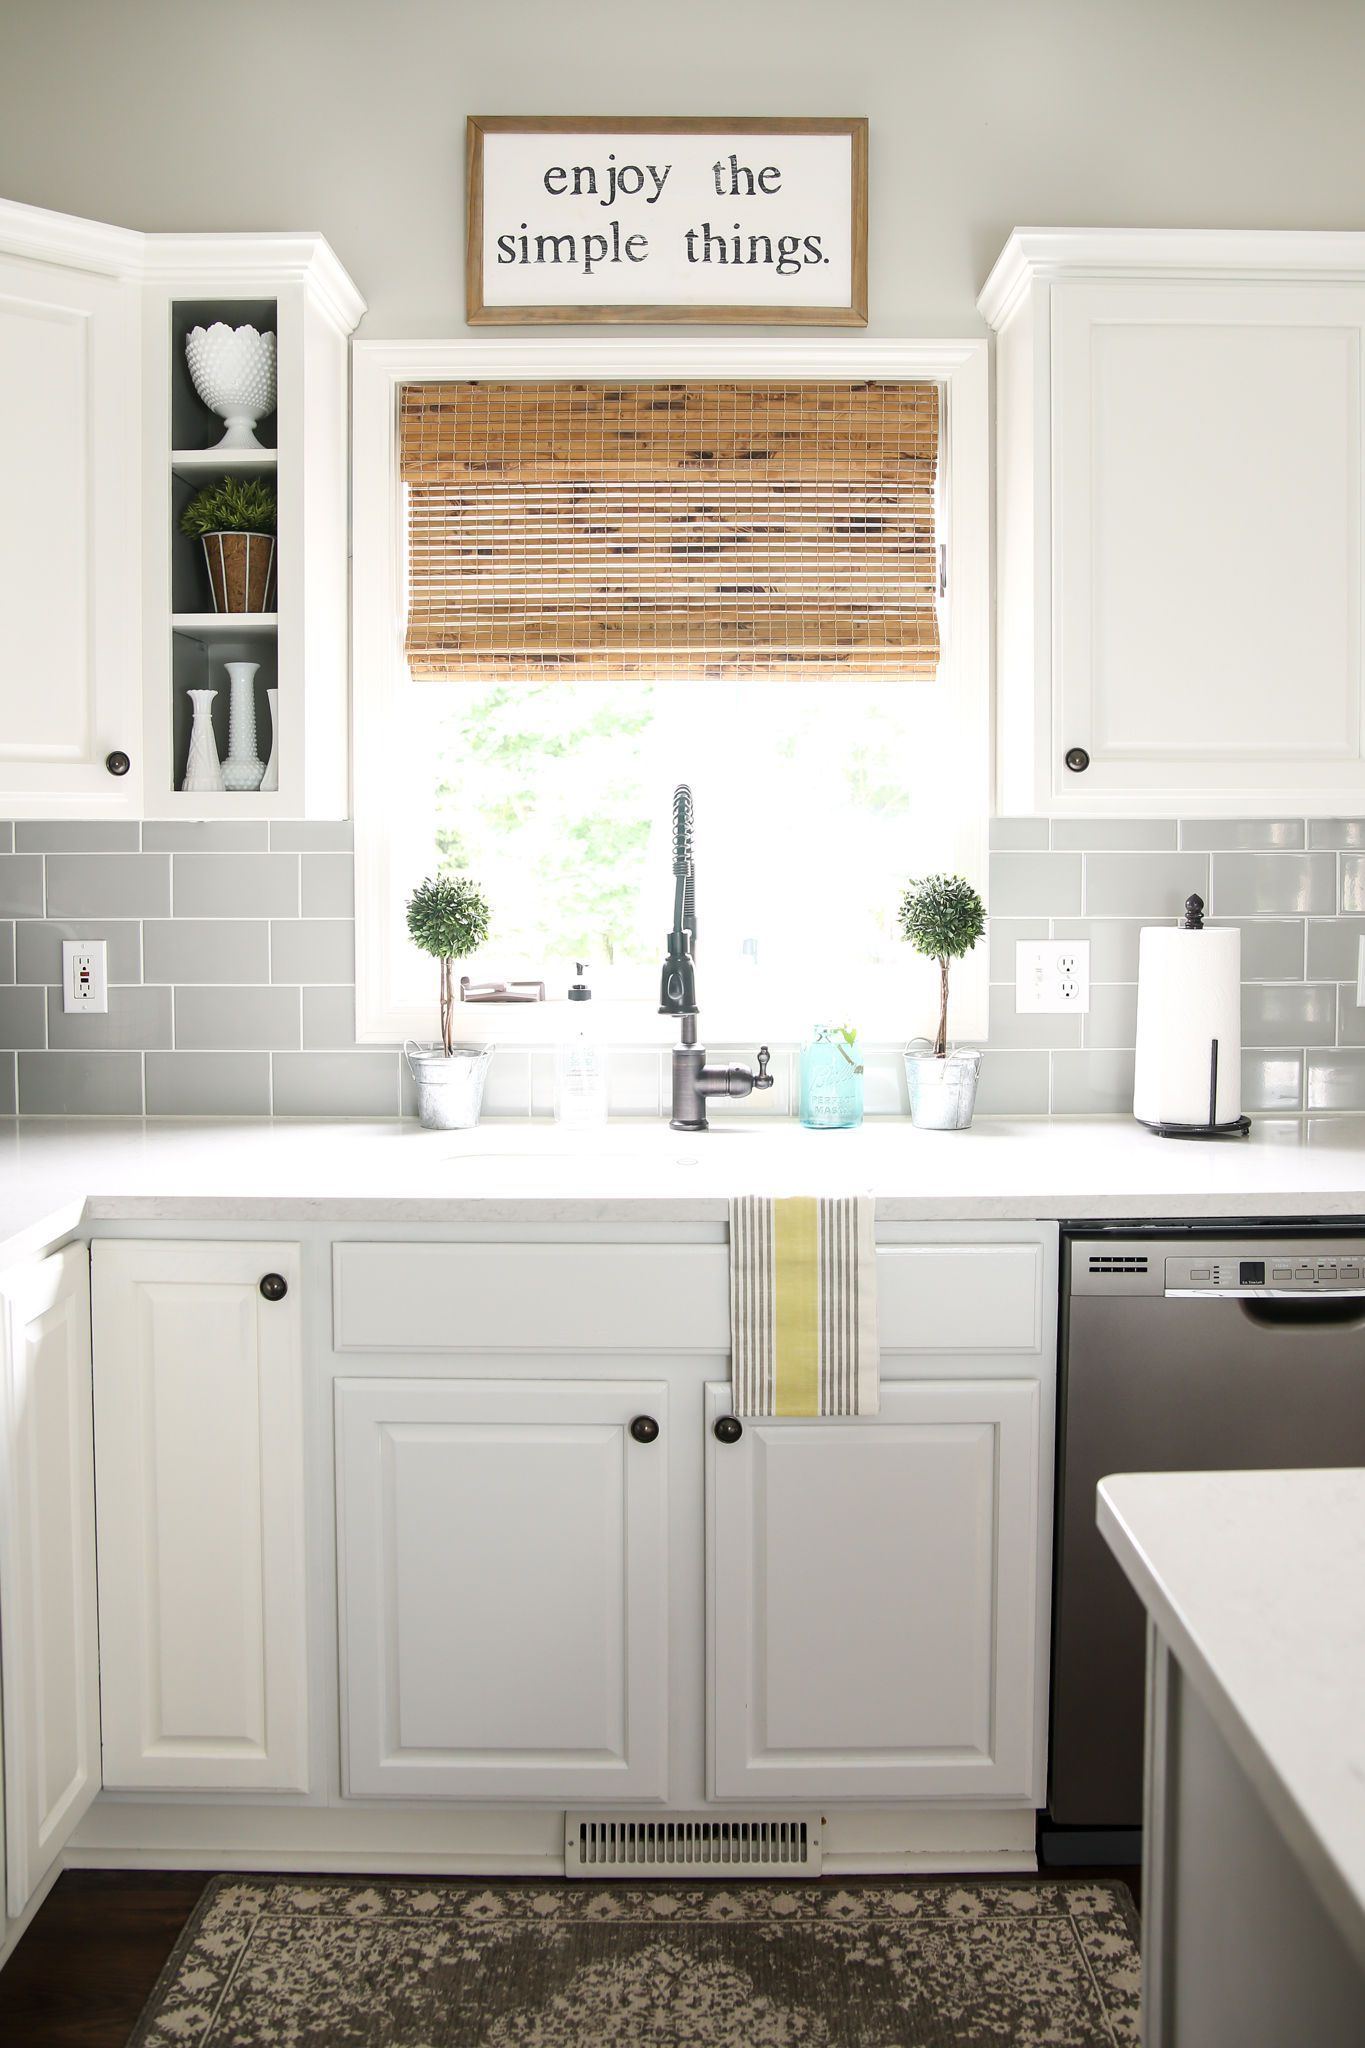 5 Fresh Ideas For Kitchen Window Treatments Blinds Com Kitchen Window Coverings Kitchen Remodel Small Kitchen Remodel Layout